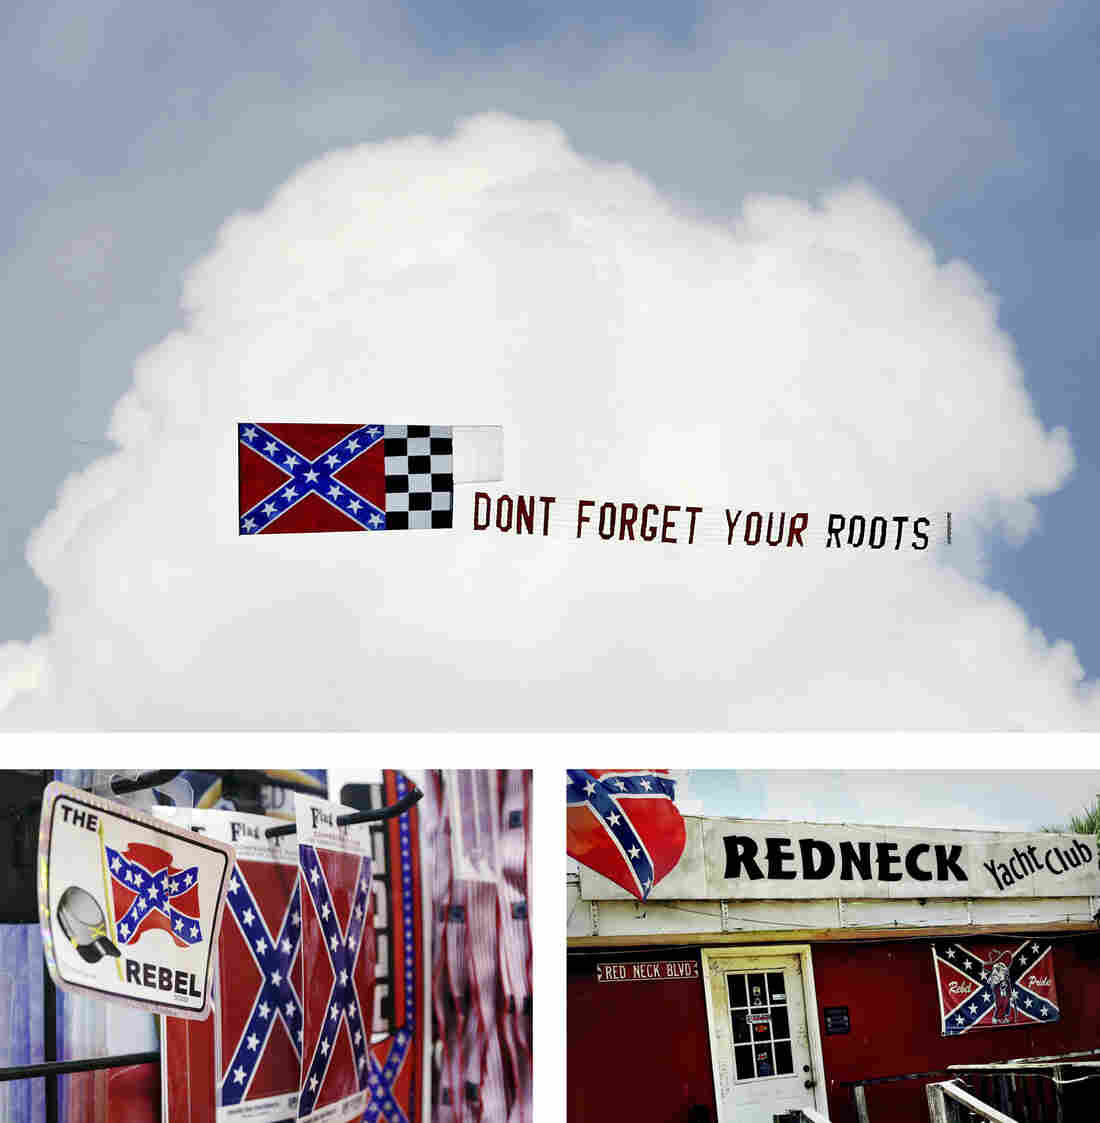 (Top) A NASCAR event in Darlington, S.C., in 2007. (Left) A display at Arkansas Flag and Banner in Little Rock, Ark. (Right) The entrance to the Redneck Yacht Club in Yulee, Fla.